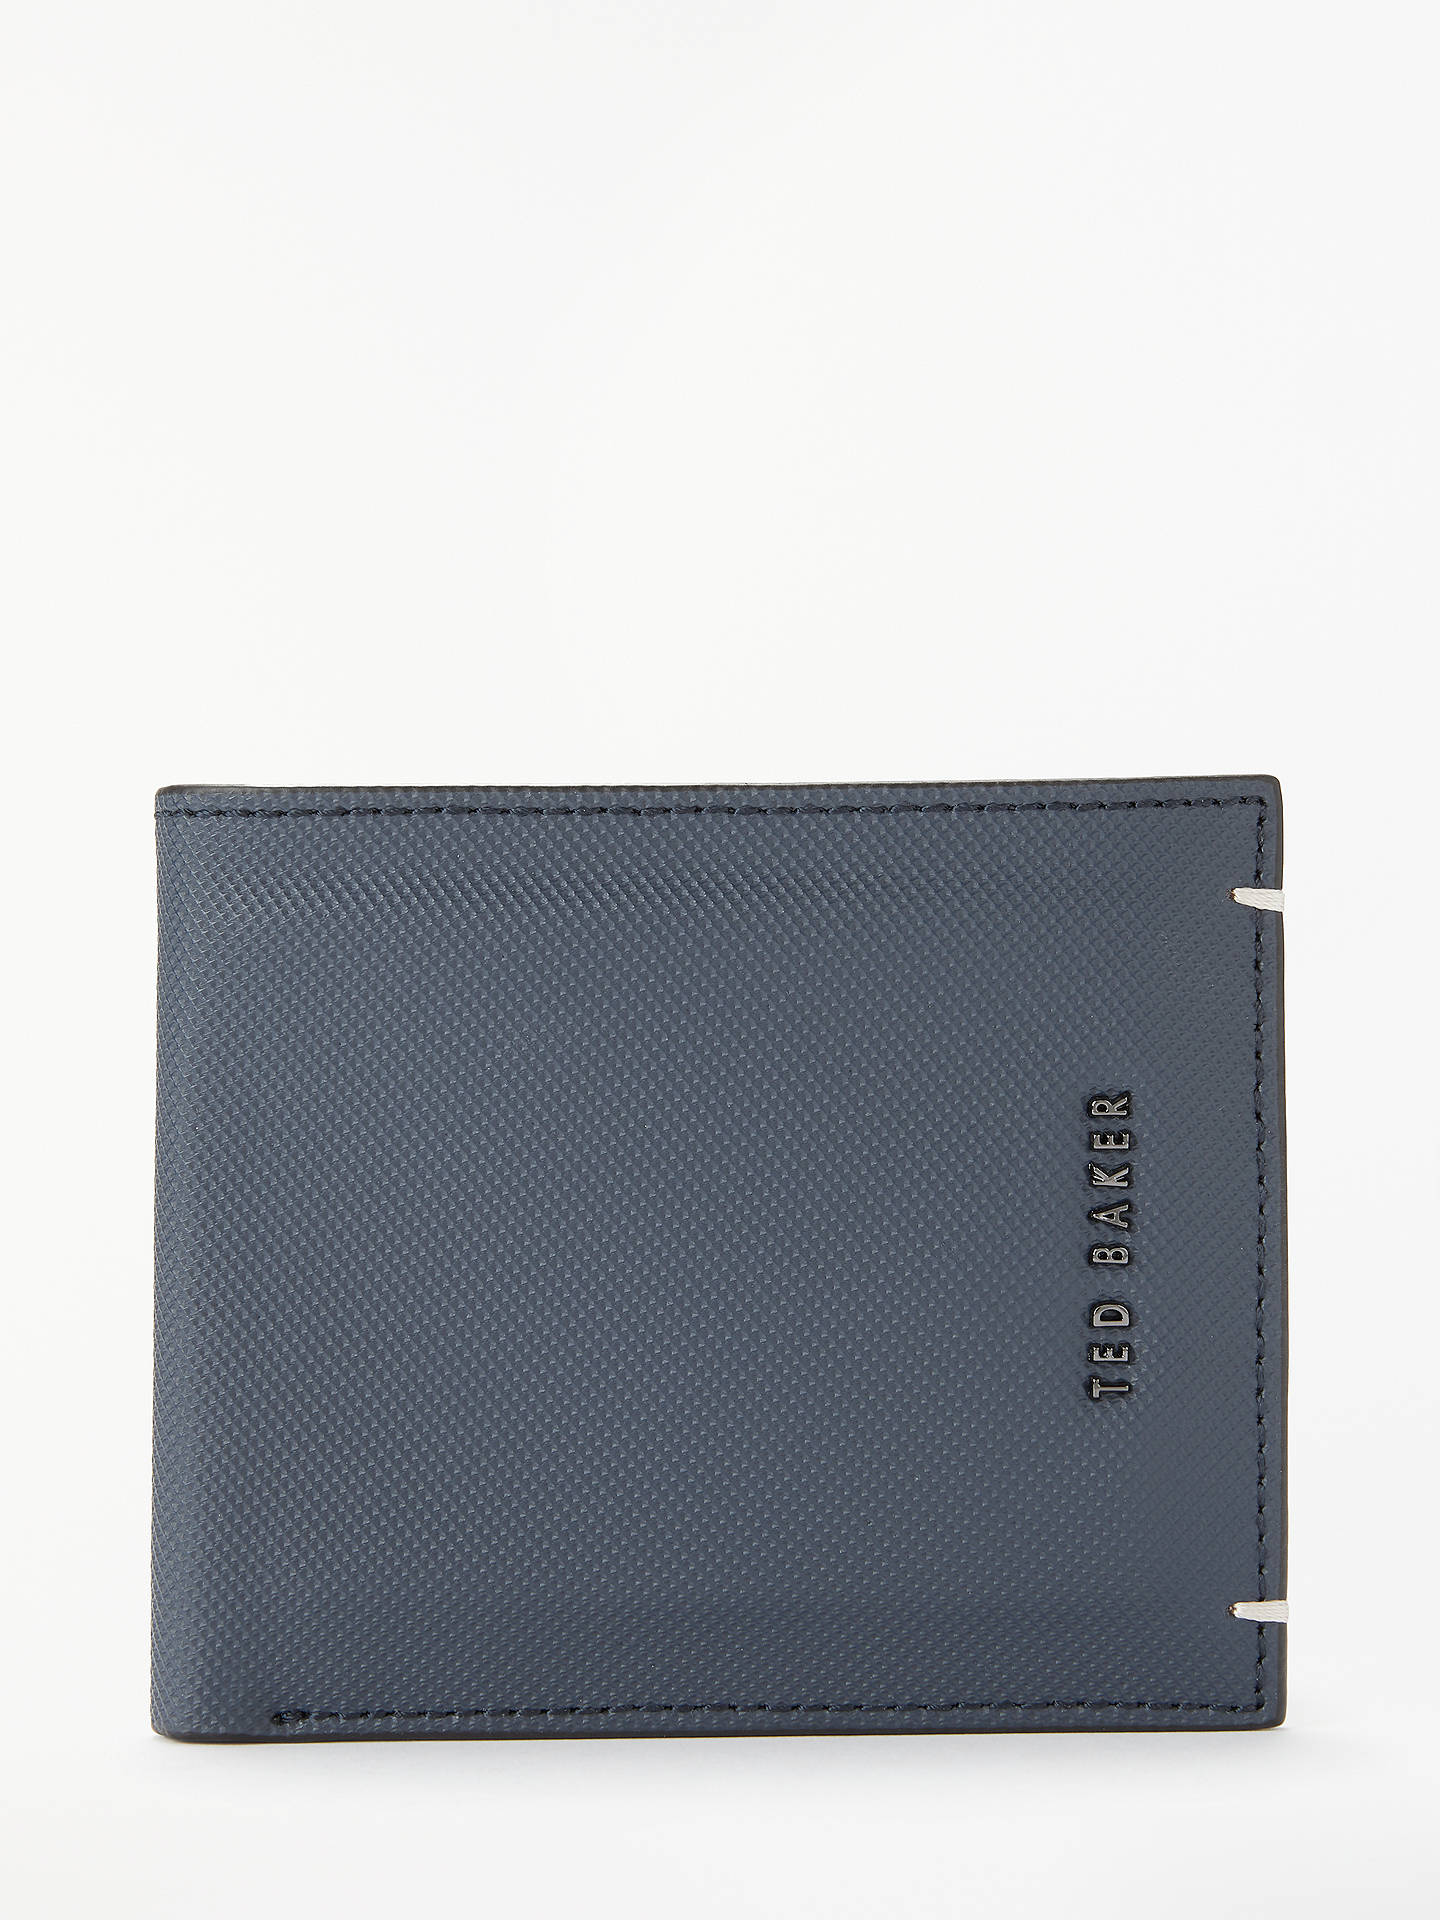 e46d208470aa1e Buy Ted Baker Stormz Perforated Leather Bi-fold Wallet